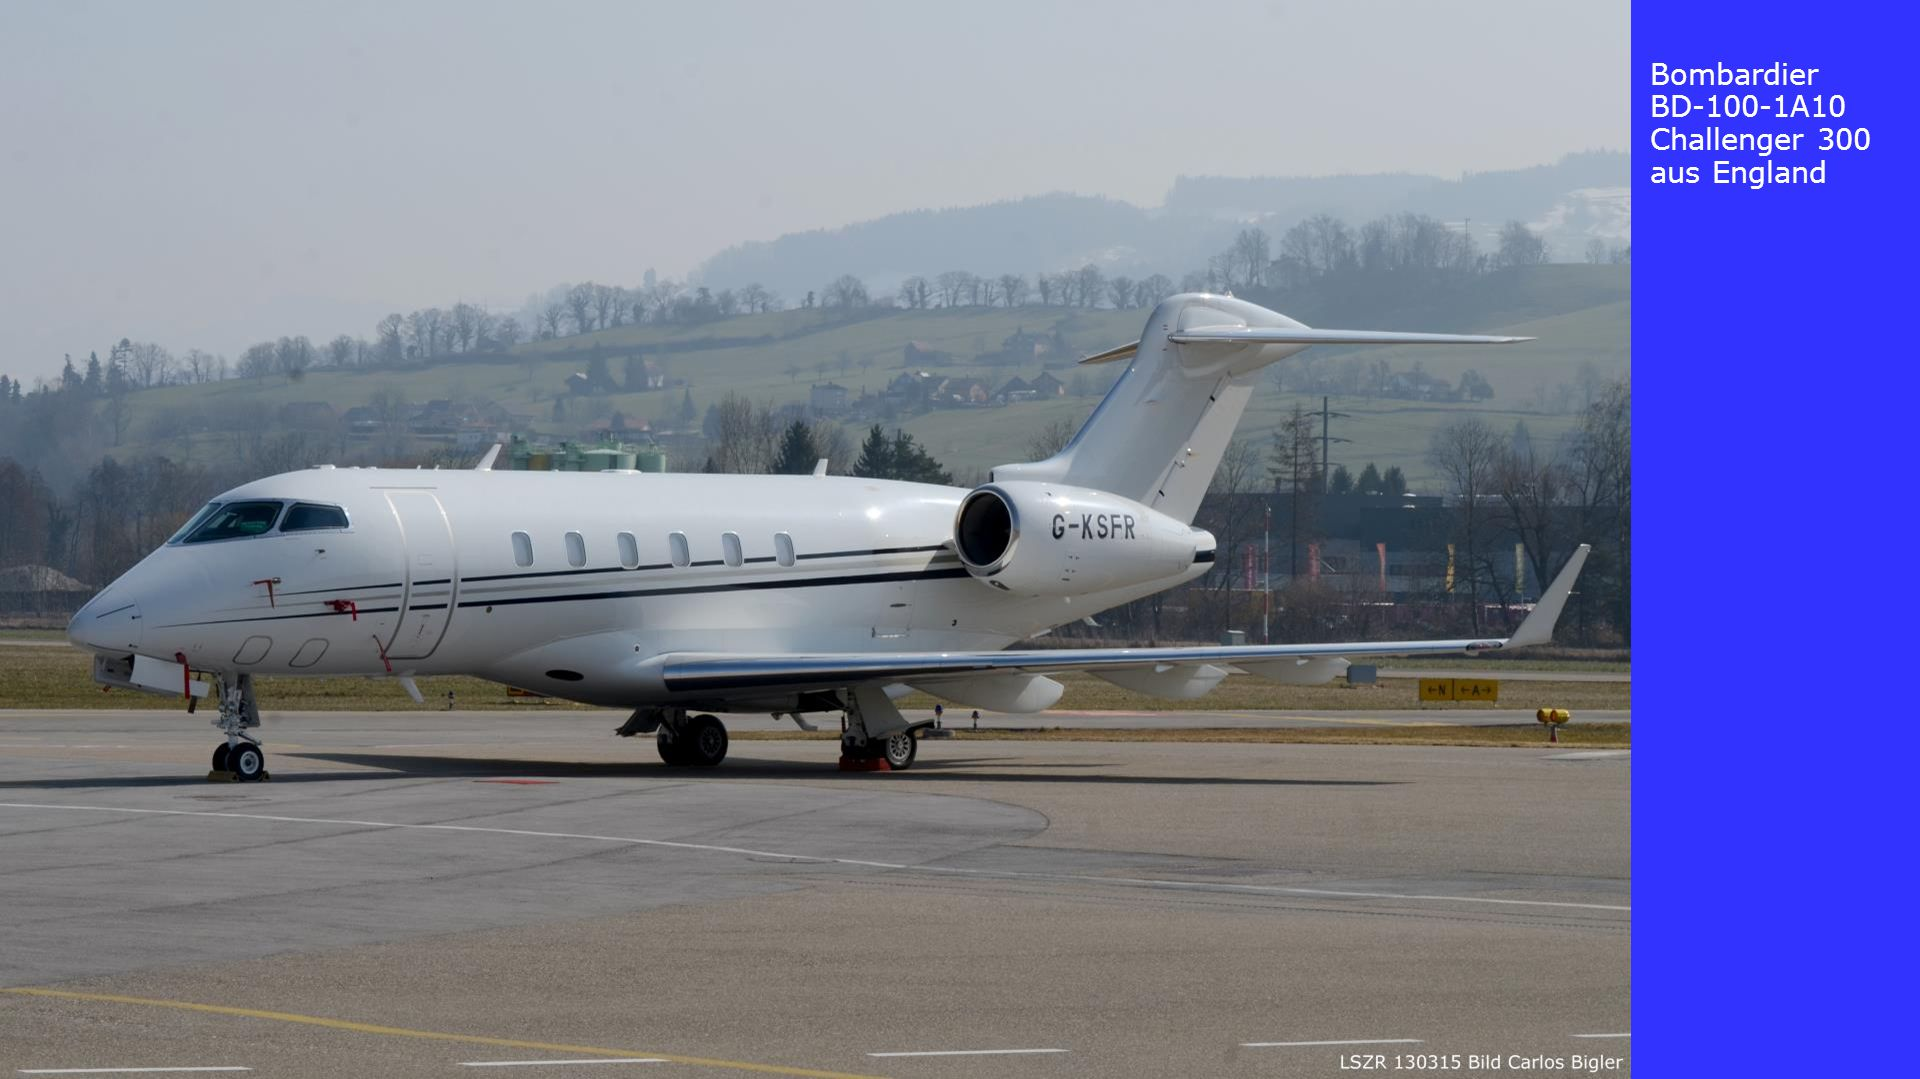 Bombardier BD-100-1A10 Challenger 300 aus England